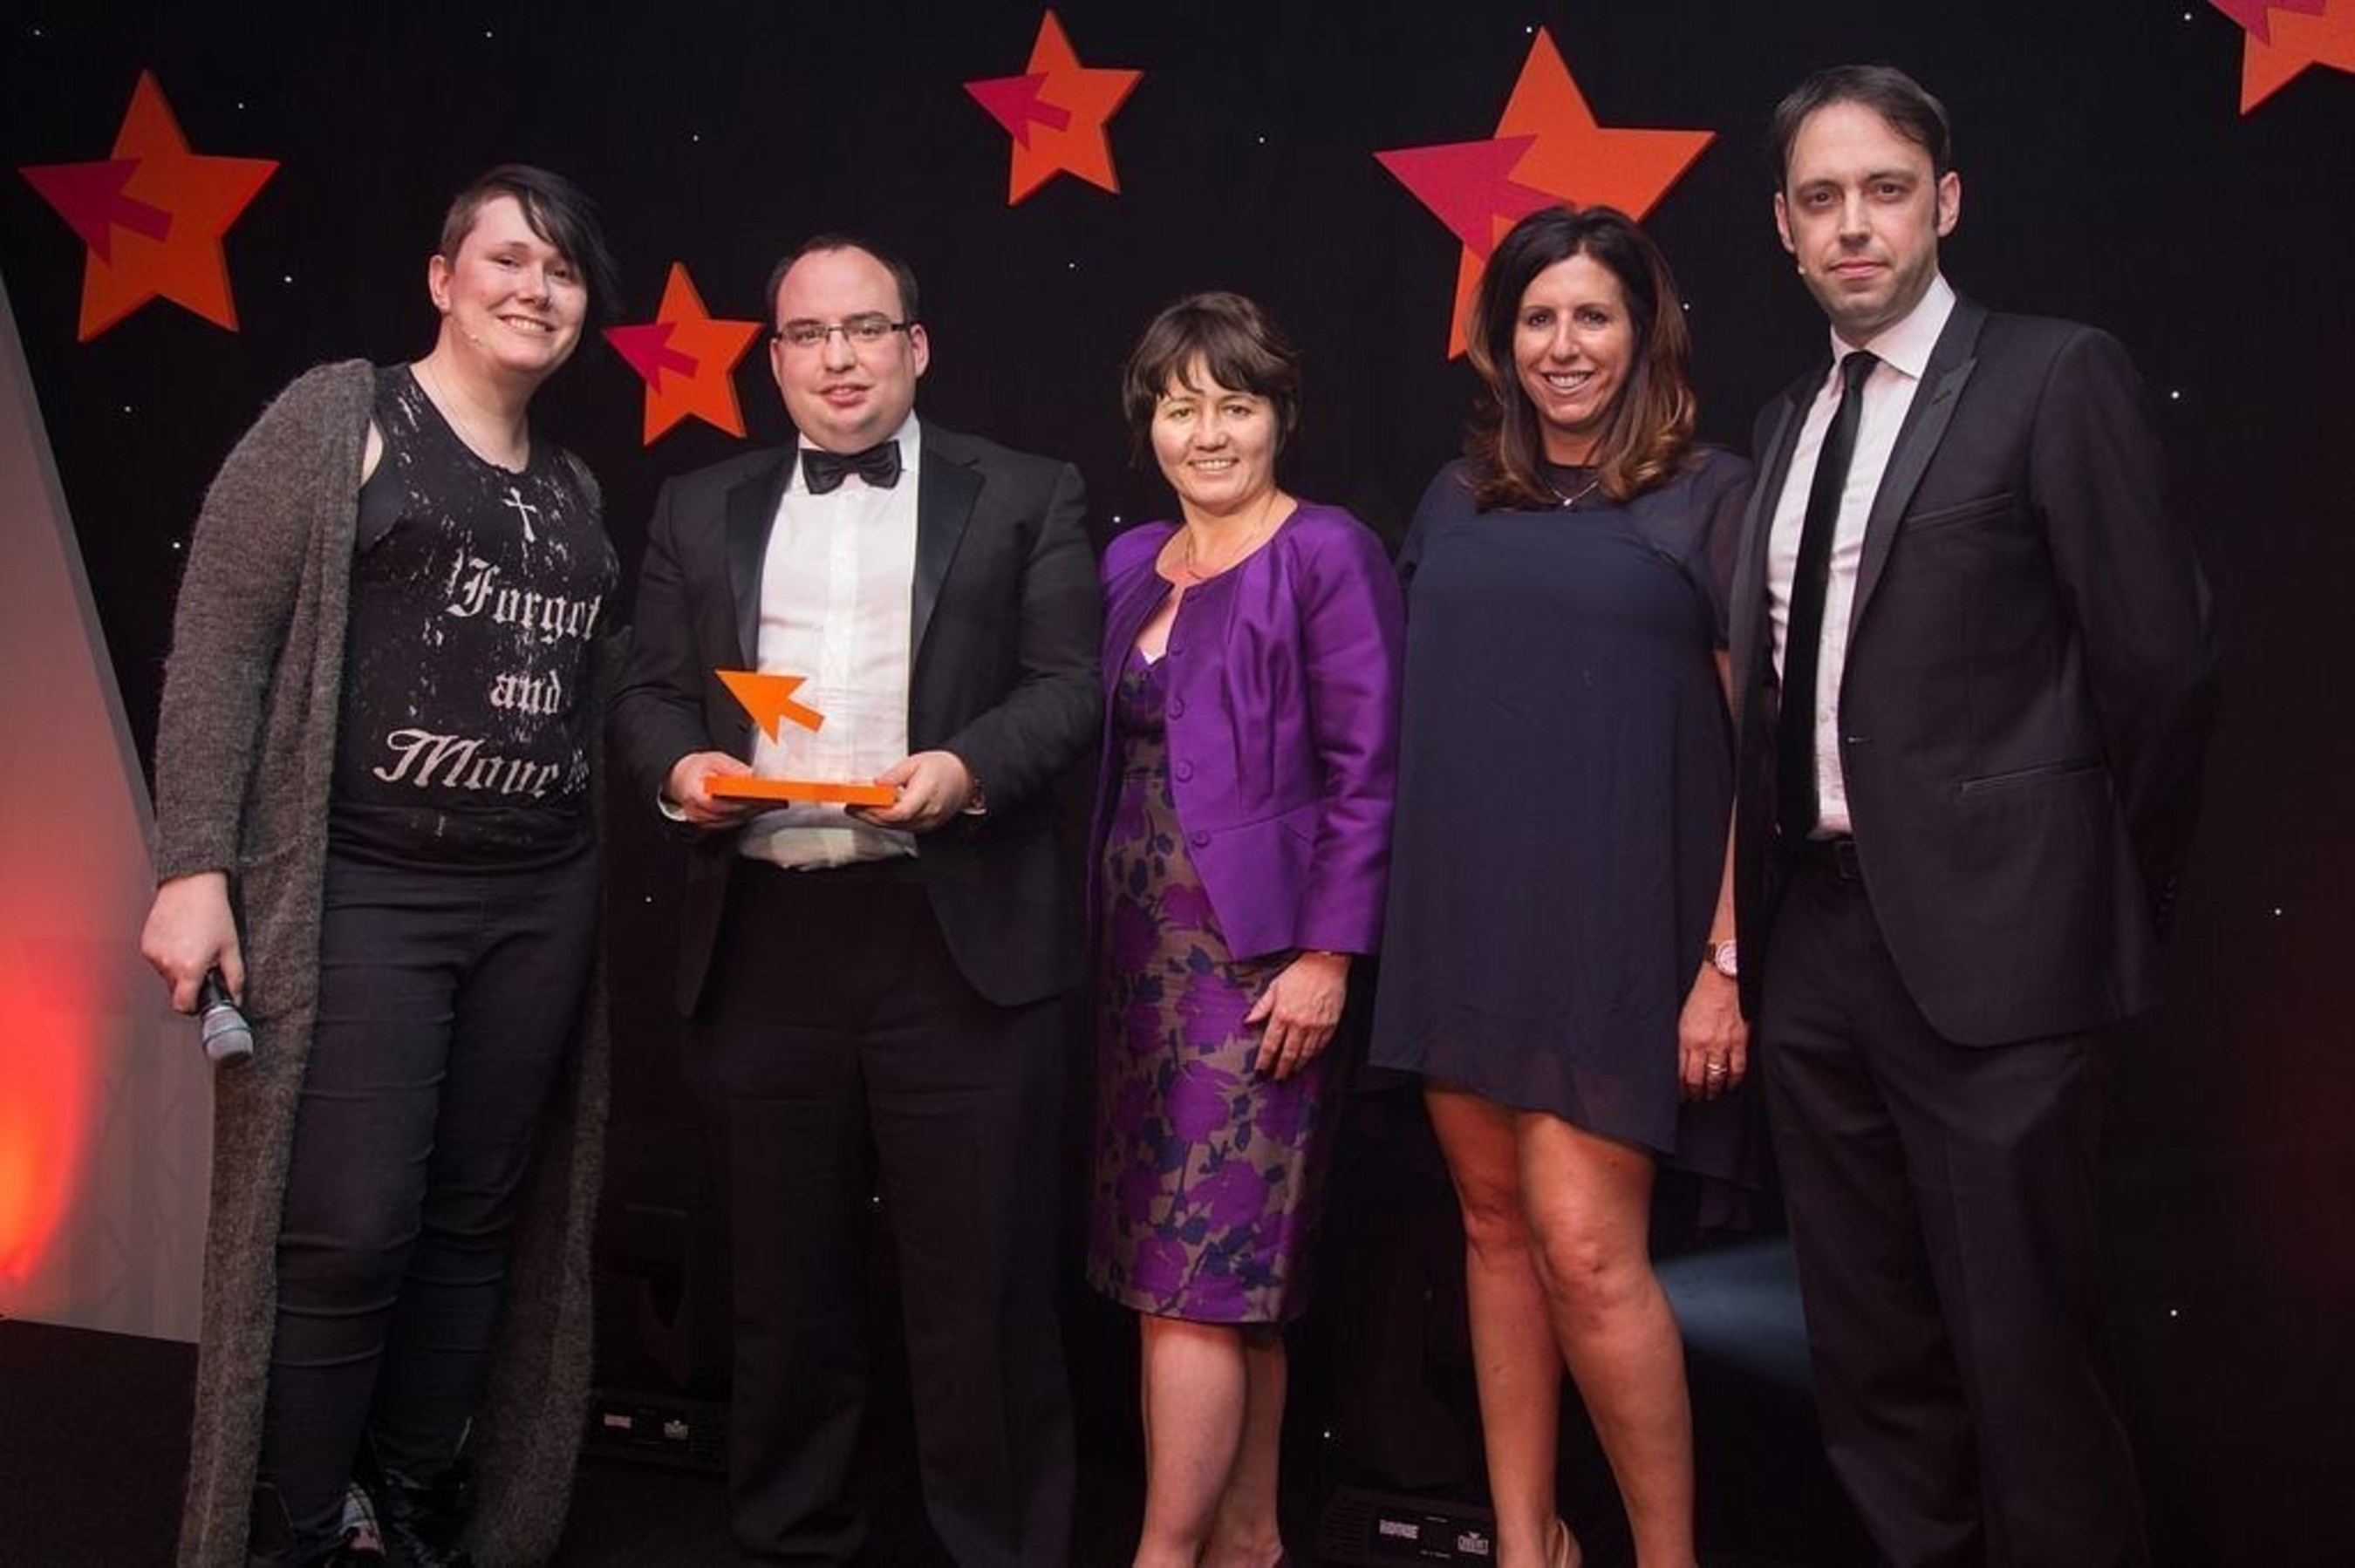 Photo from left to right: Bethany Black - compère and comedian, Andrew Scully, Commercial Director BigChange, Julie Turner, Financial Director BigChange, awards sponsor Laura Wolfe and judge Alastair Cole, The Engine Group. (PRNewsFoto/BigChange Apps)